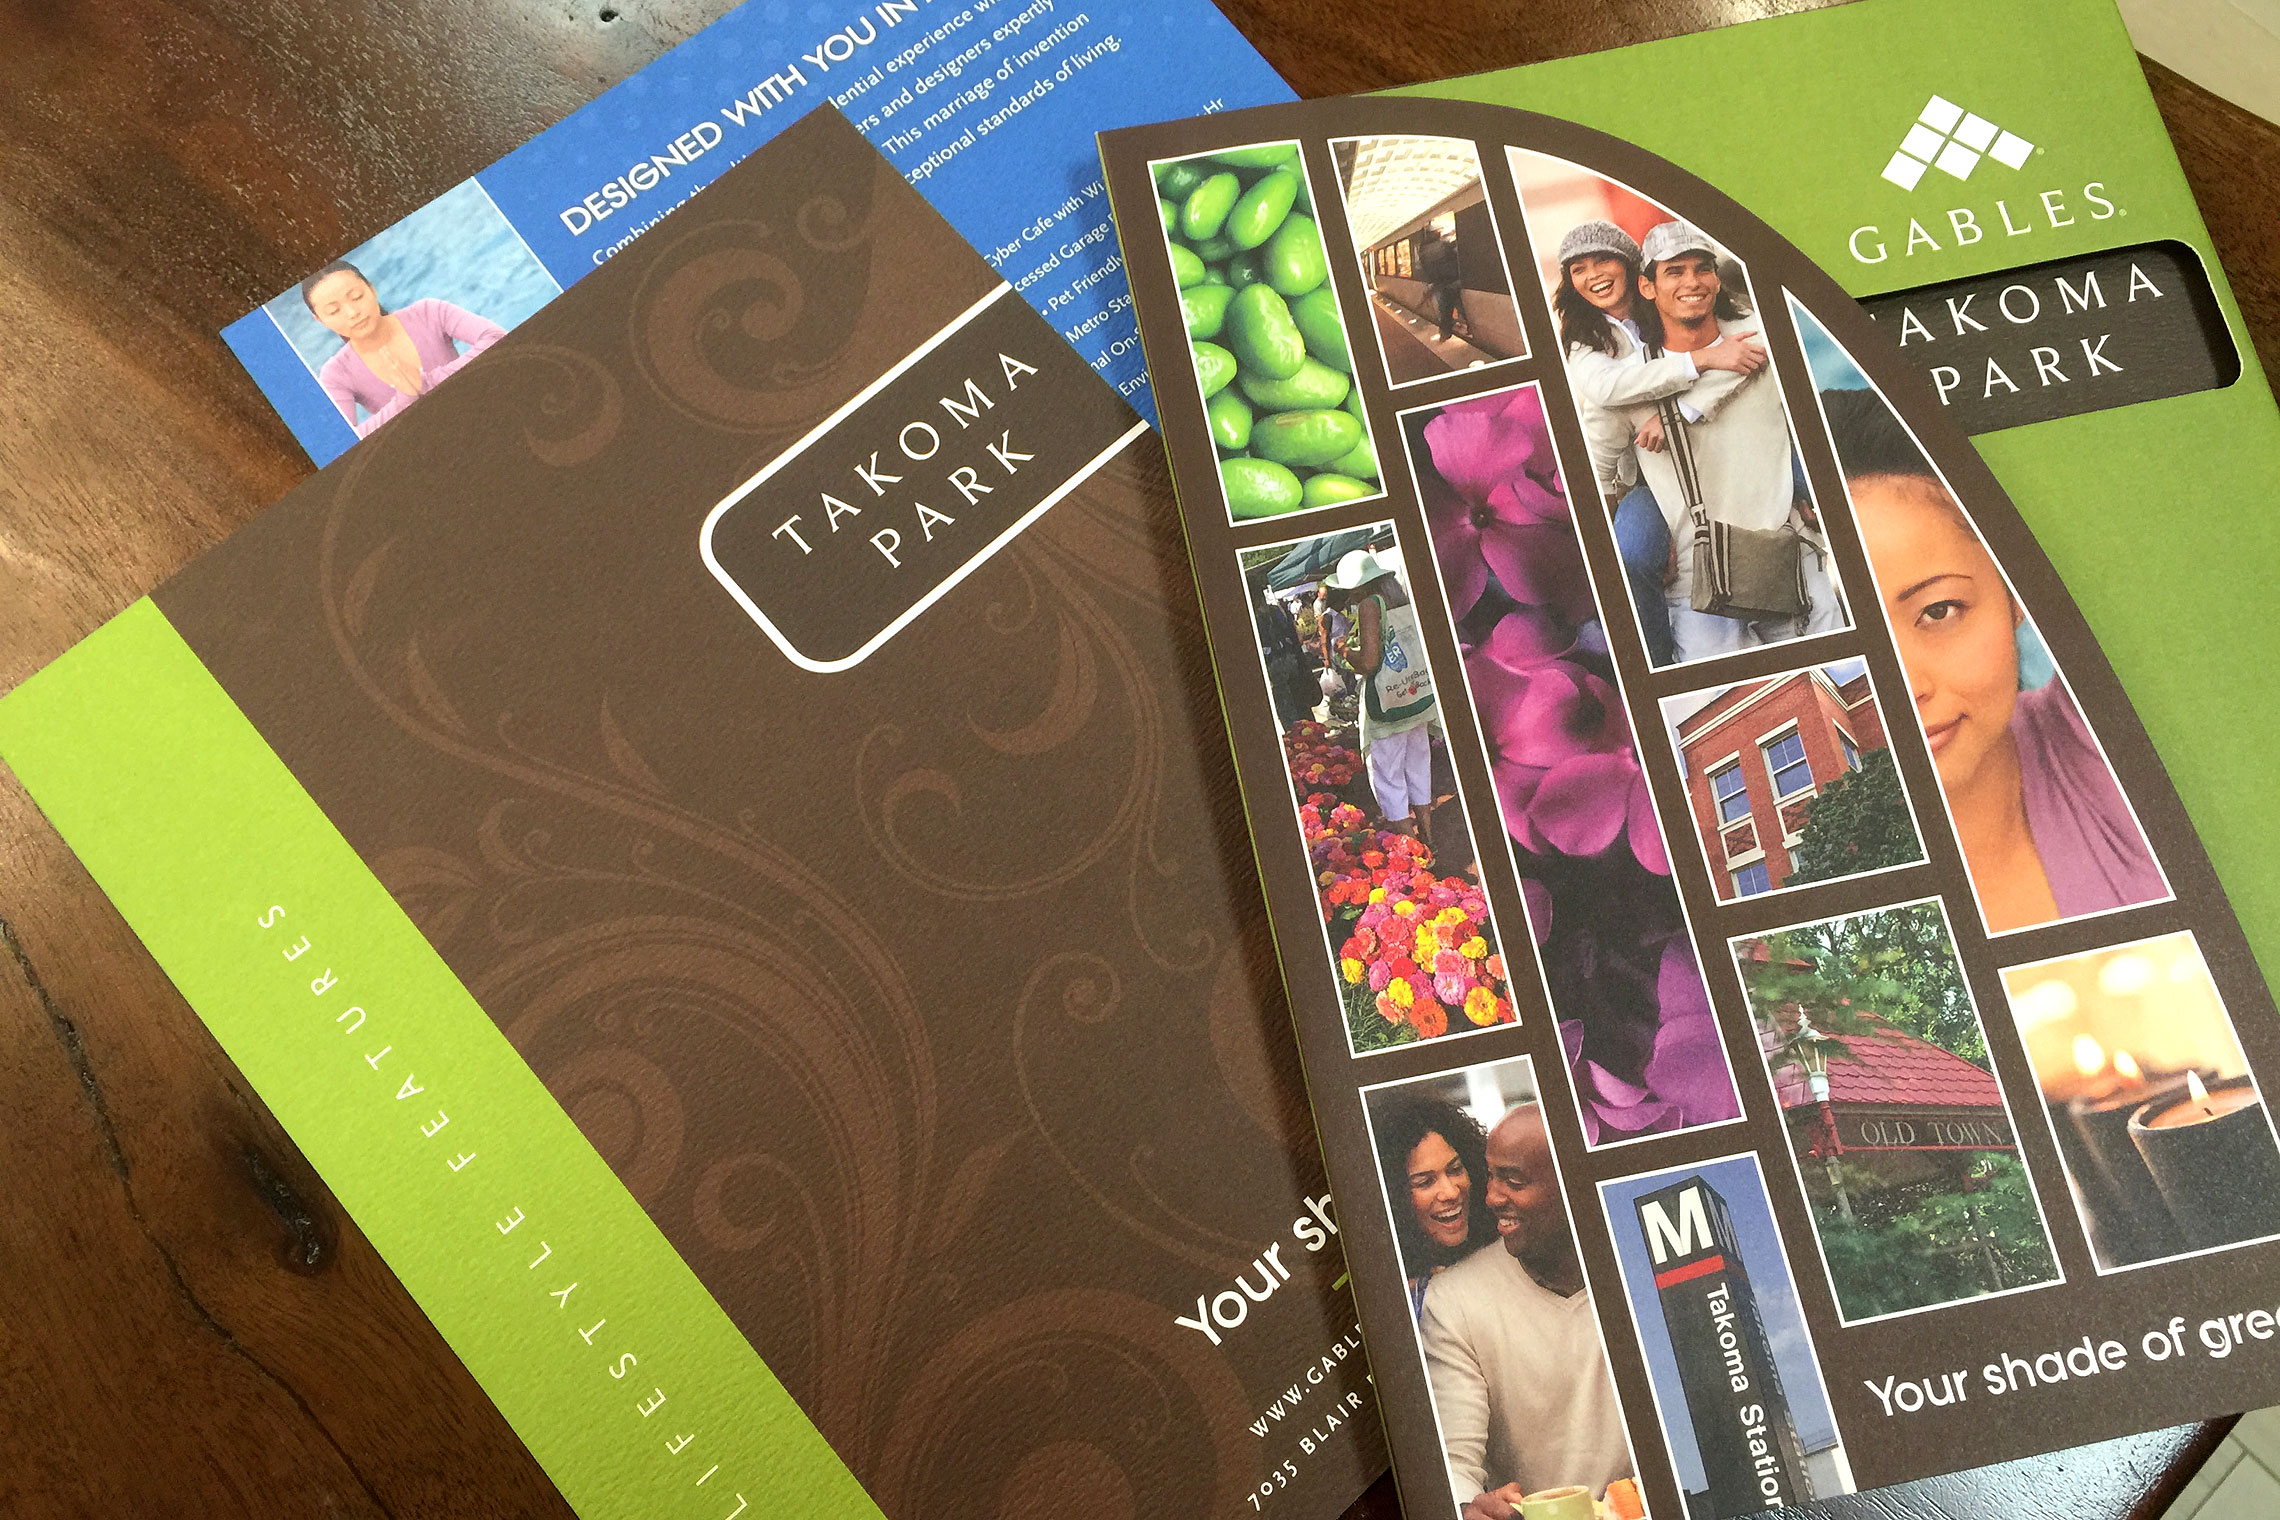 Gables Takoma Park Collateral - Pocket Folder Brochure with Flyer